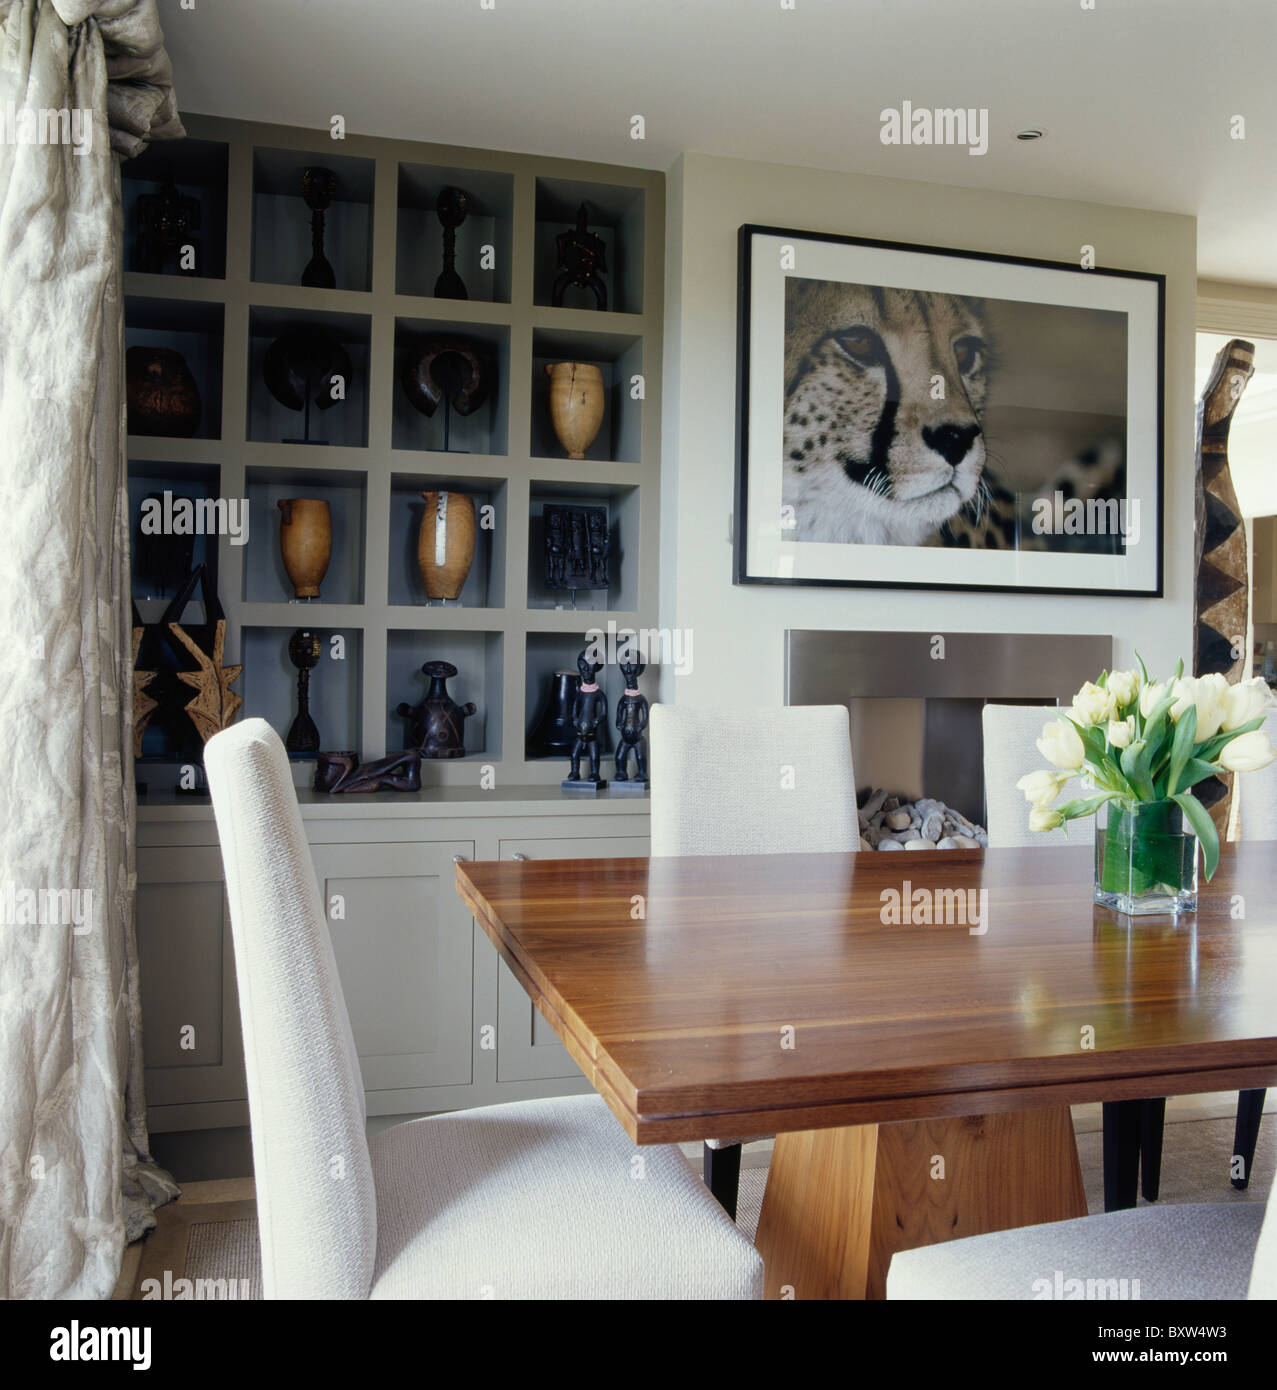 Large Picture Above Fireplace In Cream Dining Room With Cube Alcove Shelving And Chairs At Plain Wood Table